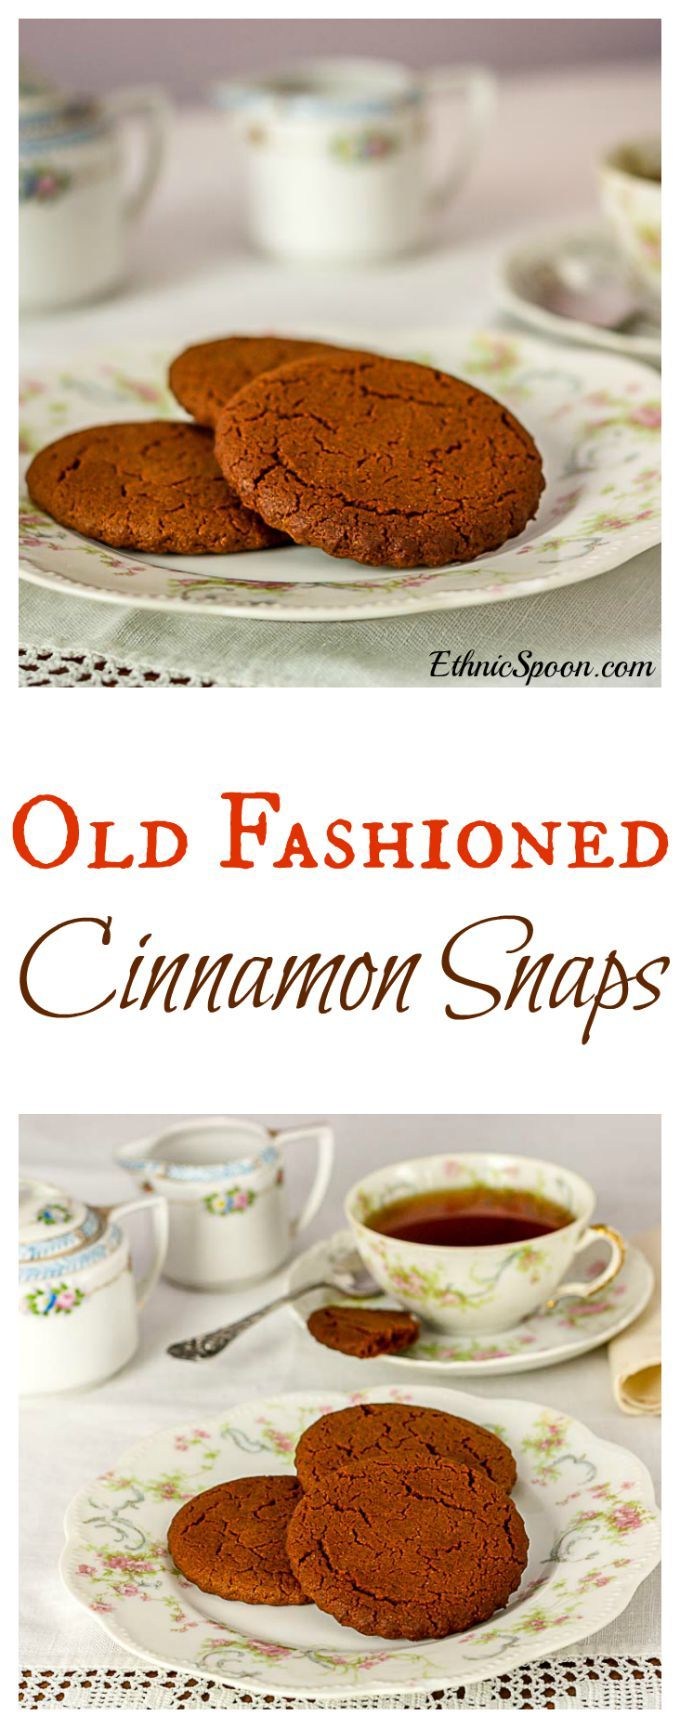 A 100+ year old family recipe for cinnamon snaps. A really nice crunchy cookie recipe!  ethnicspoon.com